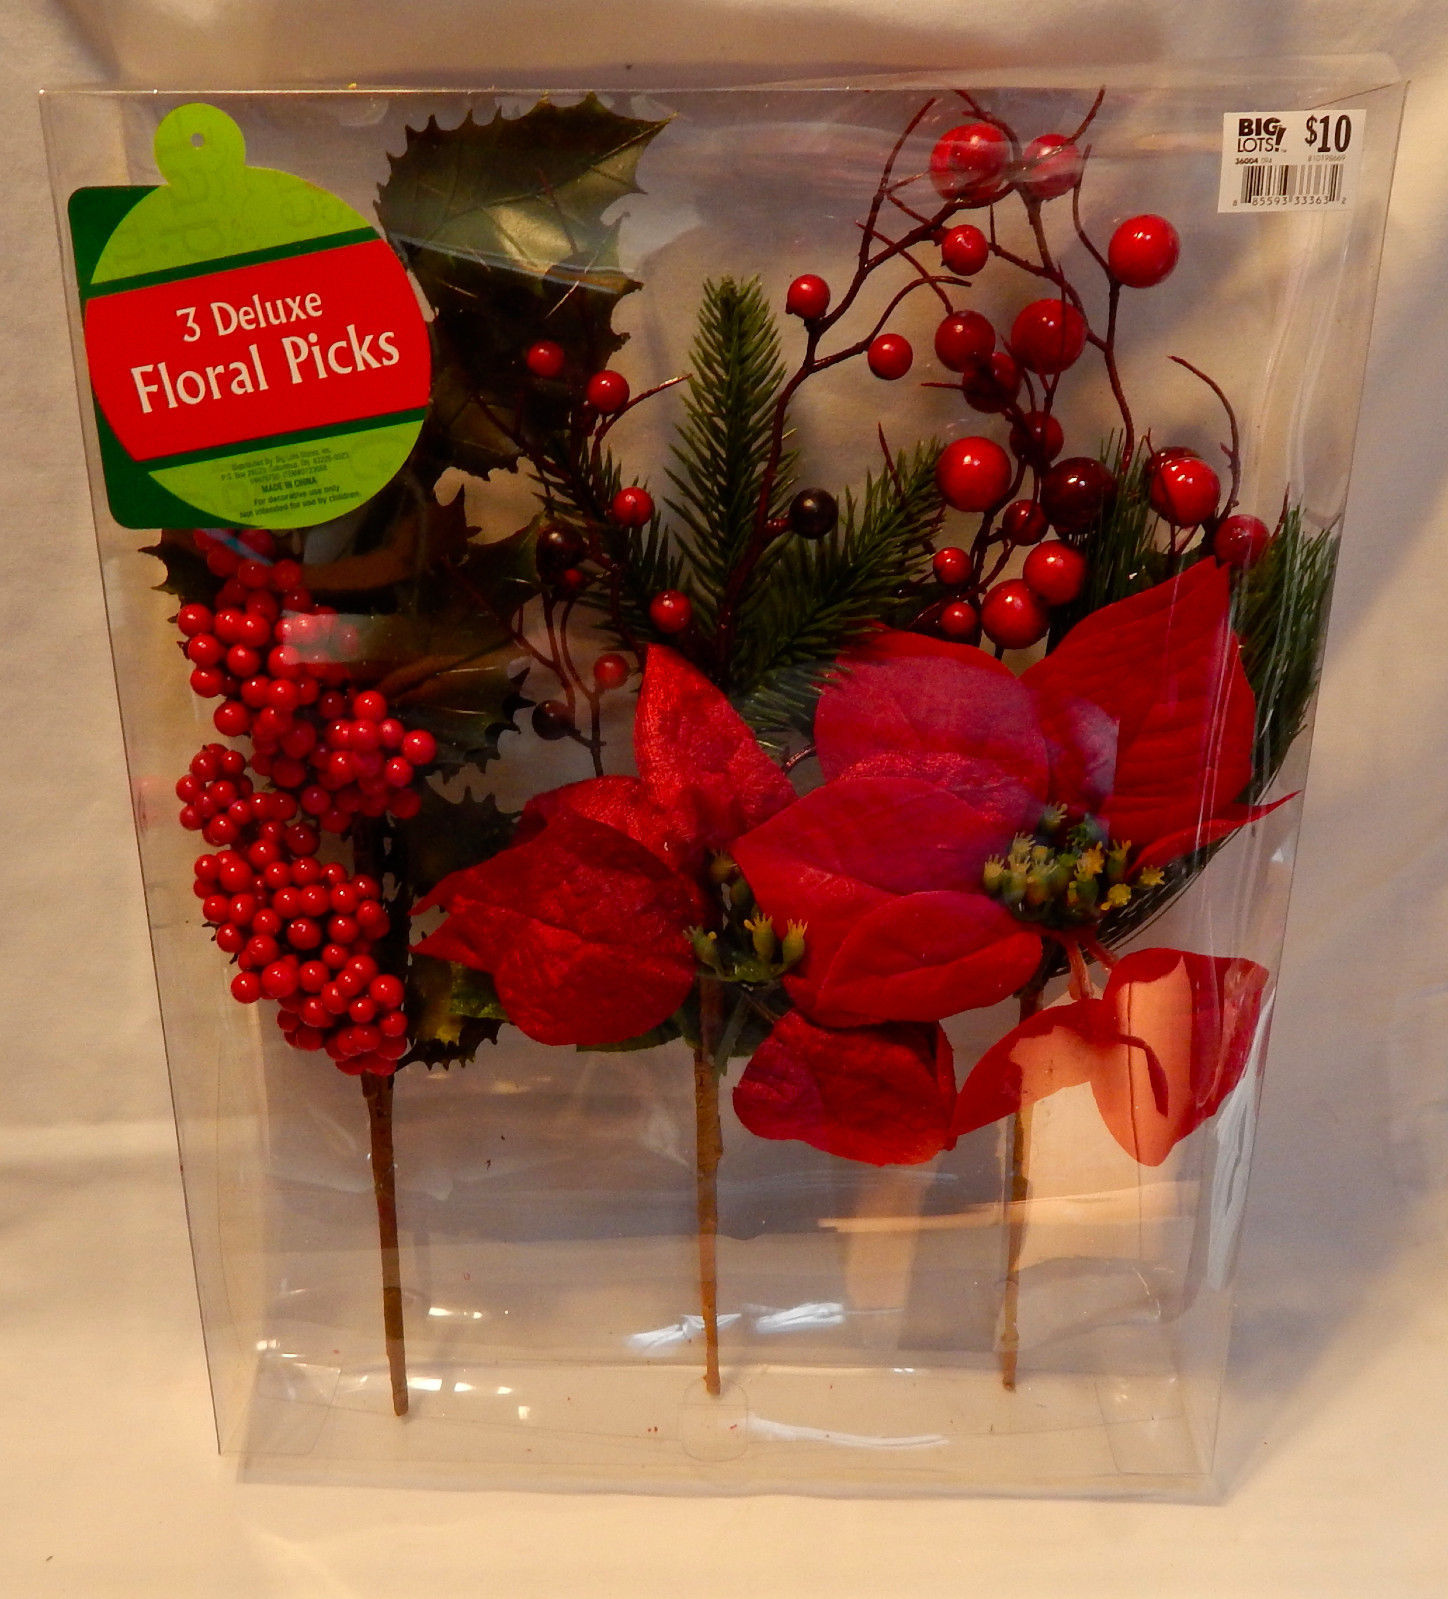 Deluxe Floral Picks Fall Decor Red Flowers All Holidays 3ea Berries & Leaves 33S